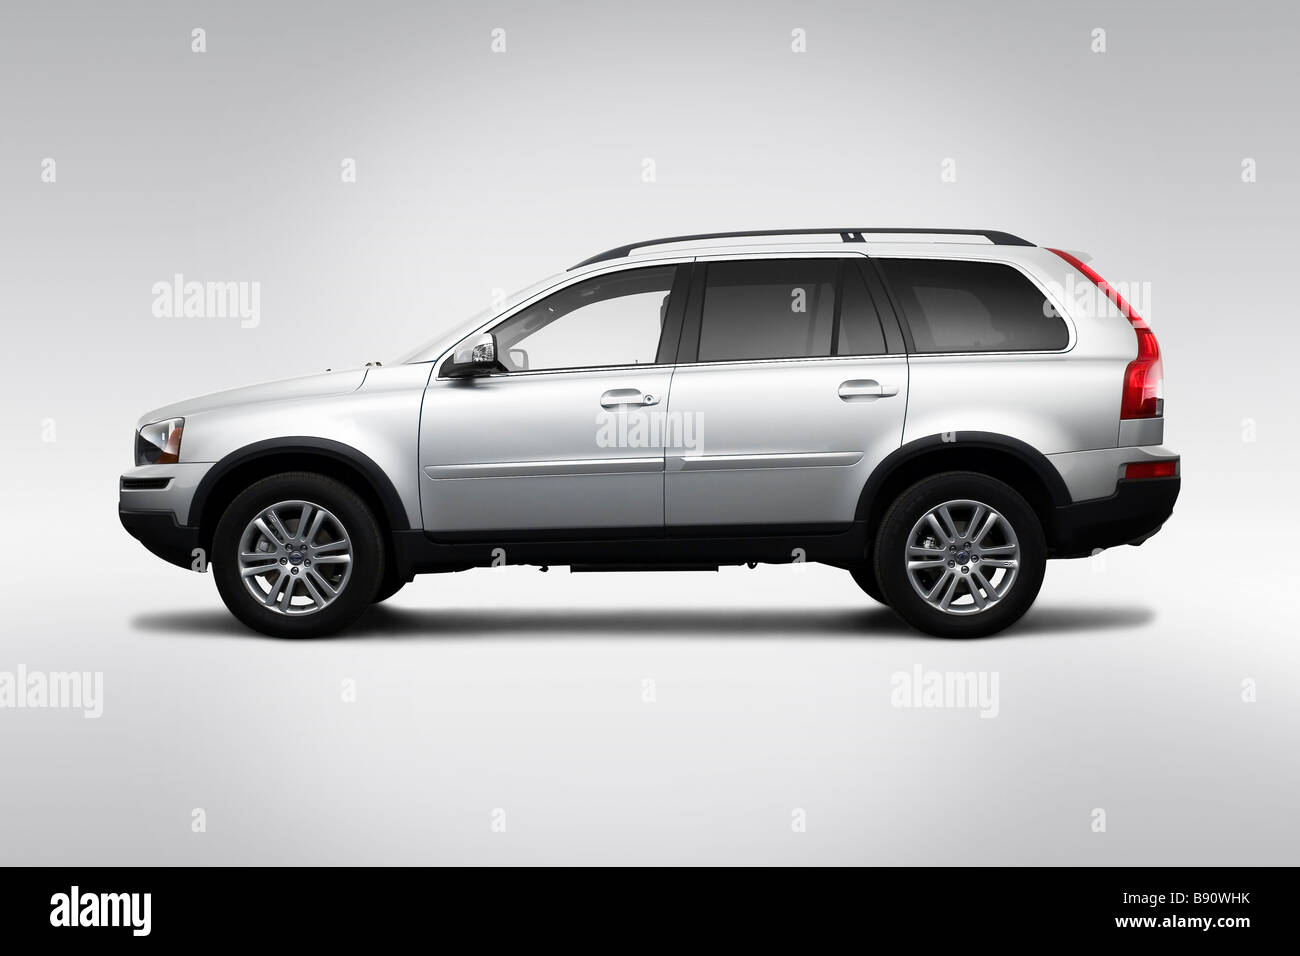 2009 volvo xc90 in silver - drivers side profile stock photo